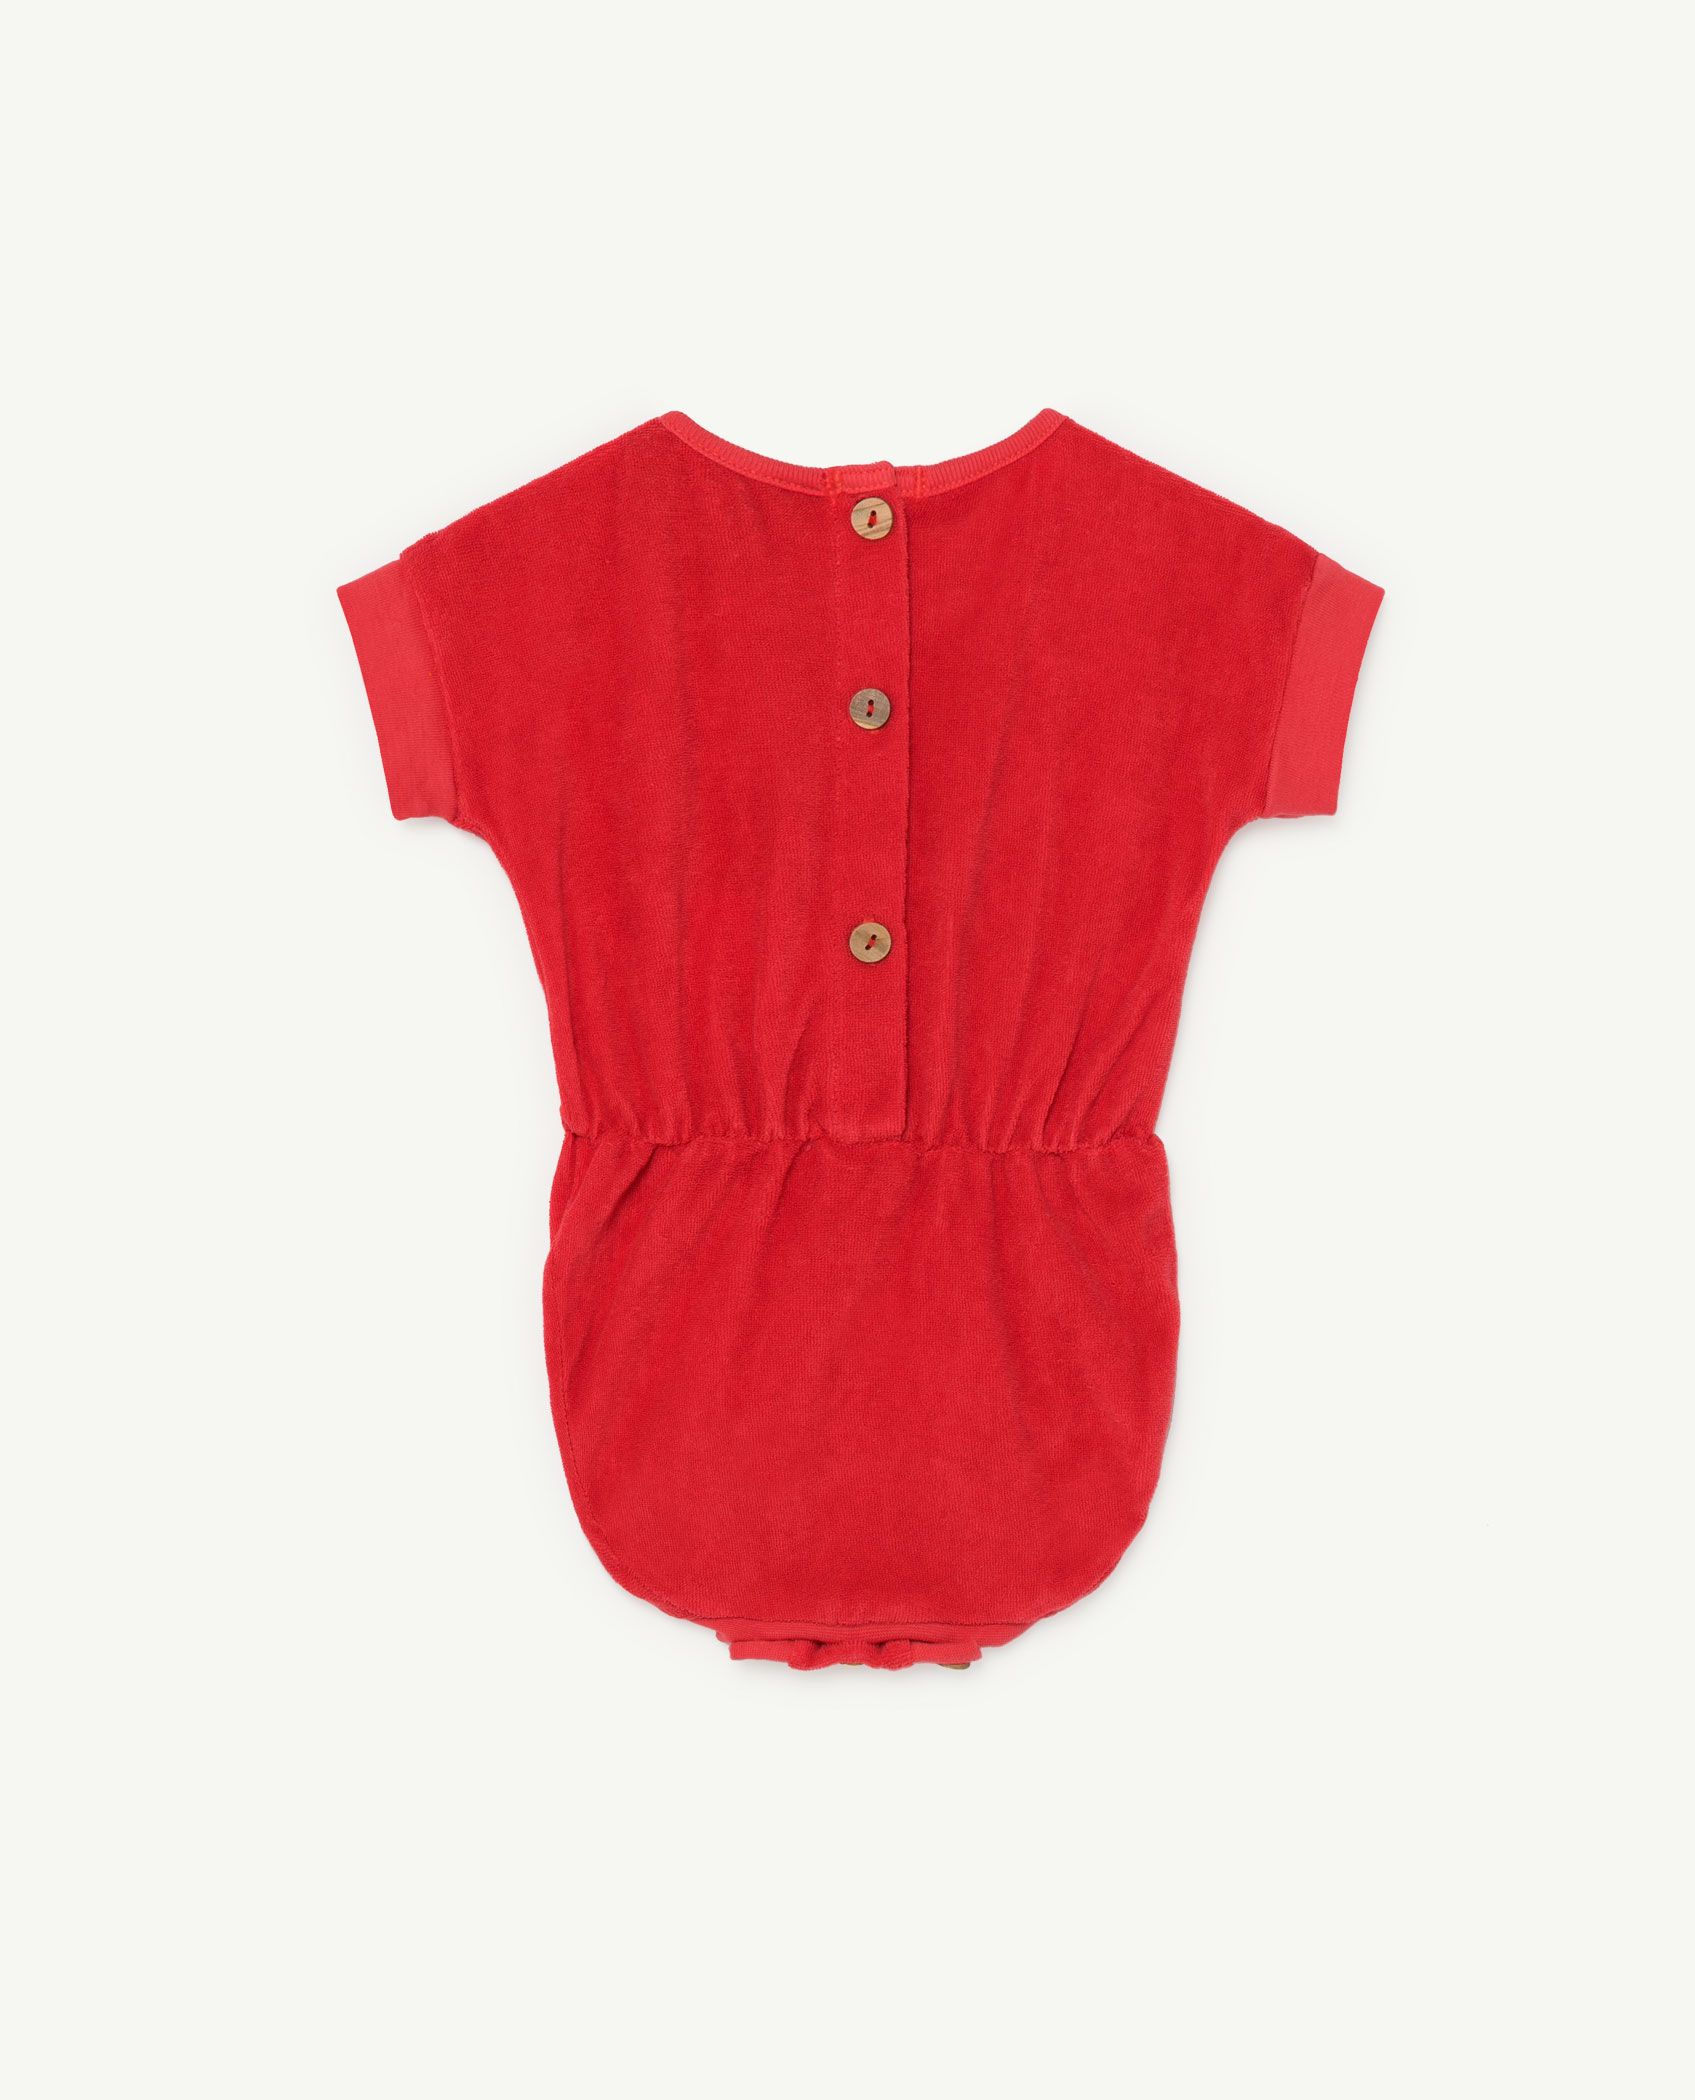 Red Koala Baby Jumpsuit img-2